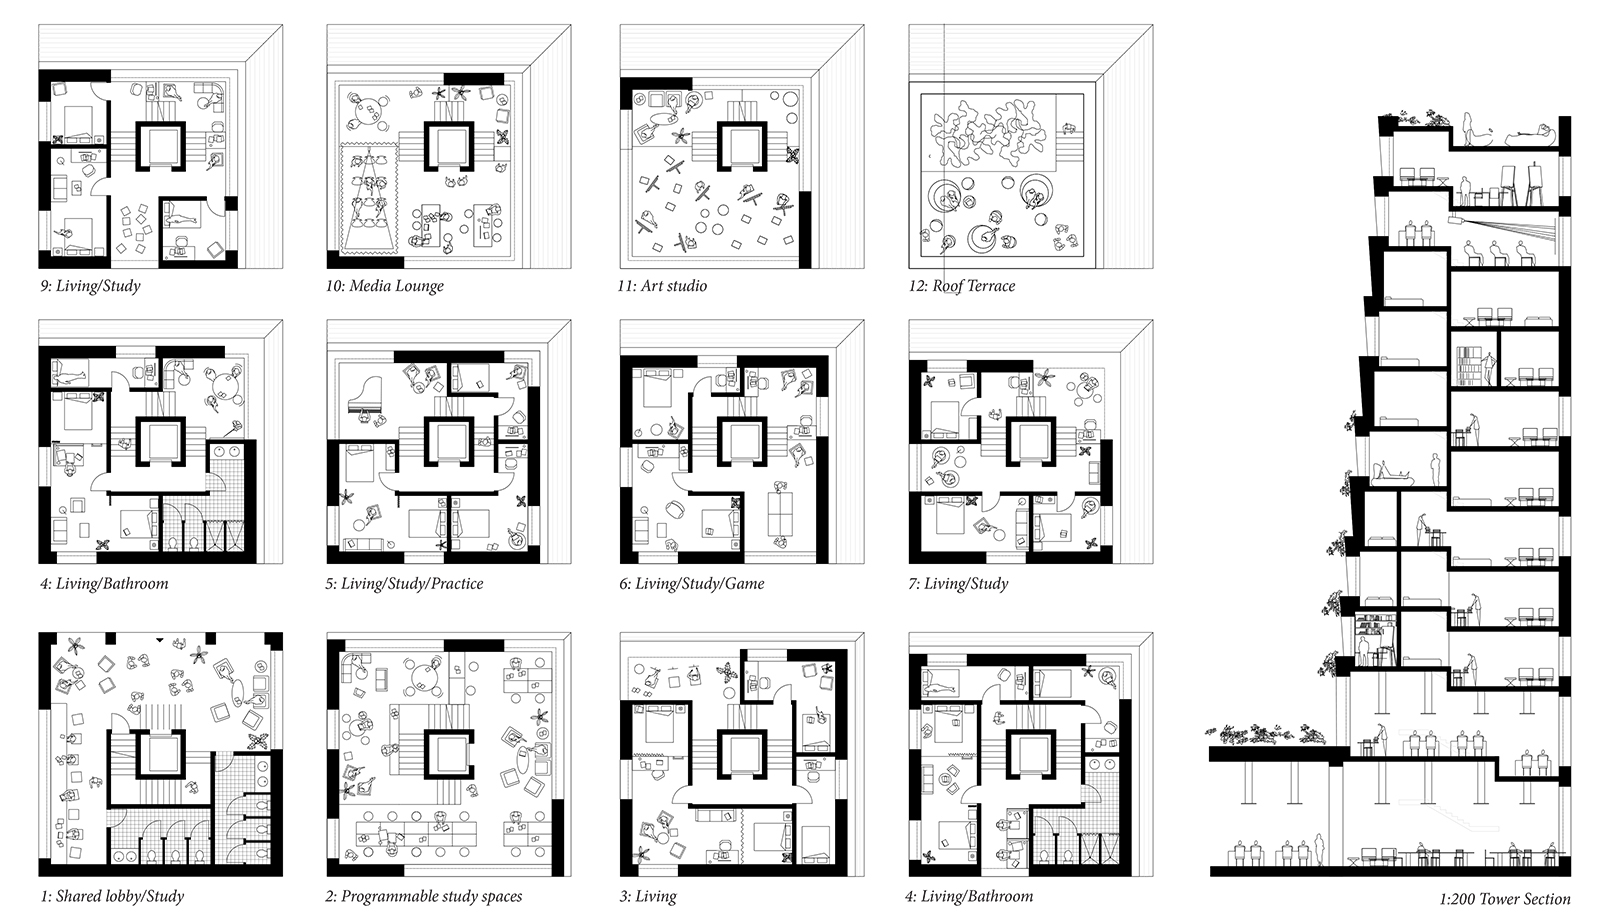 Combined drawing of all of the various UI tower floor plans and section showing the variety of discoverable study spaces